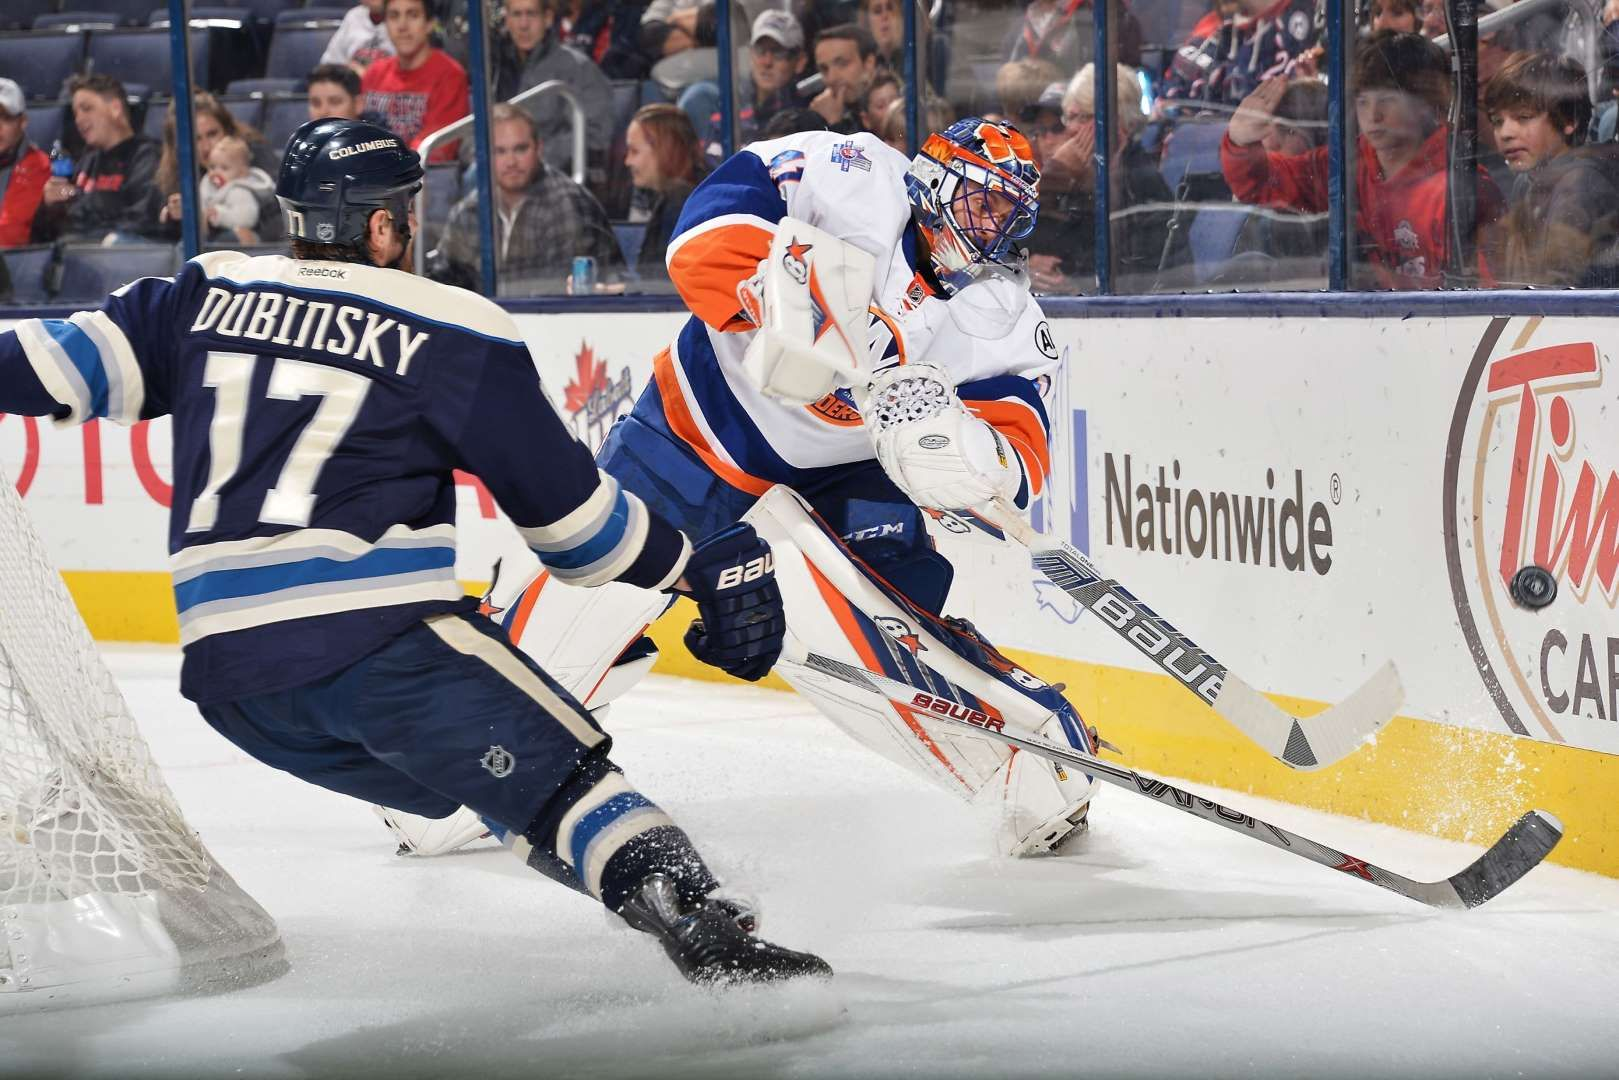 Halak handles the puck:   Goaltender Jaroslav Halak of the New York Islanders clears the puck away from Brandon Dubinsky of the Columbus Blue Jackets during the first period of a game on Dec. 12 at Nationwide Arena in Columbus, Ohio.  -     © Jamie Sabau/NHLI/Getty Images